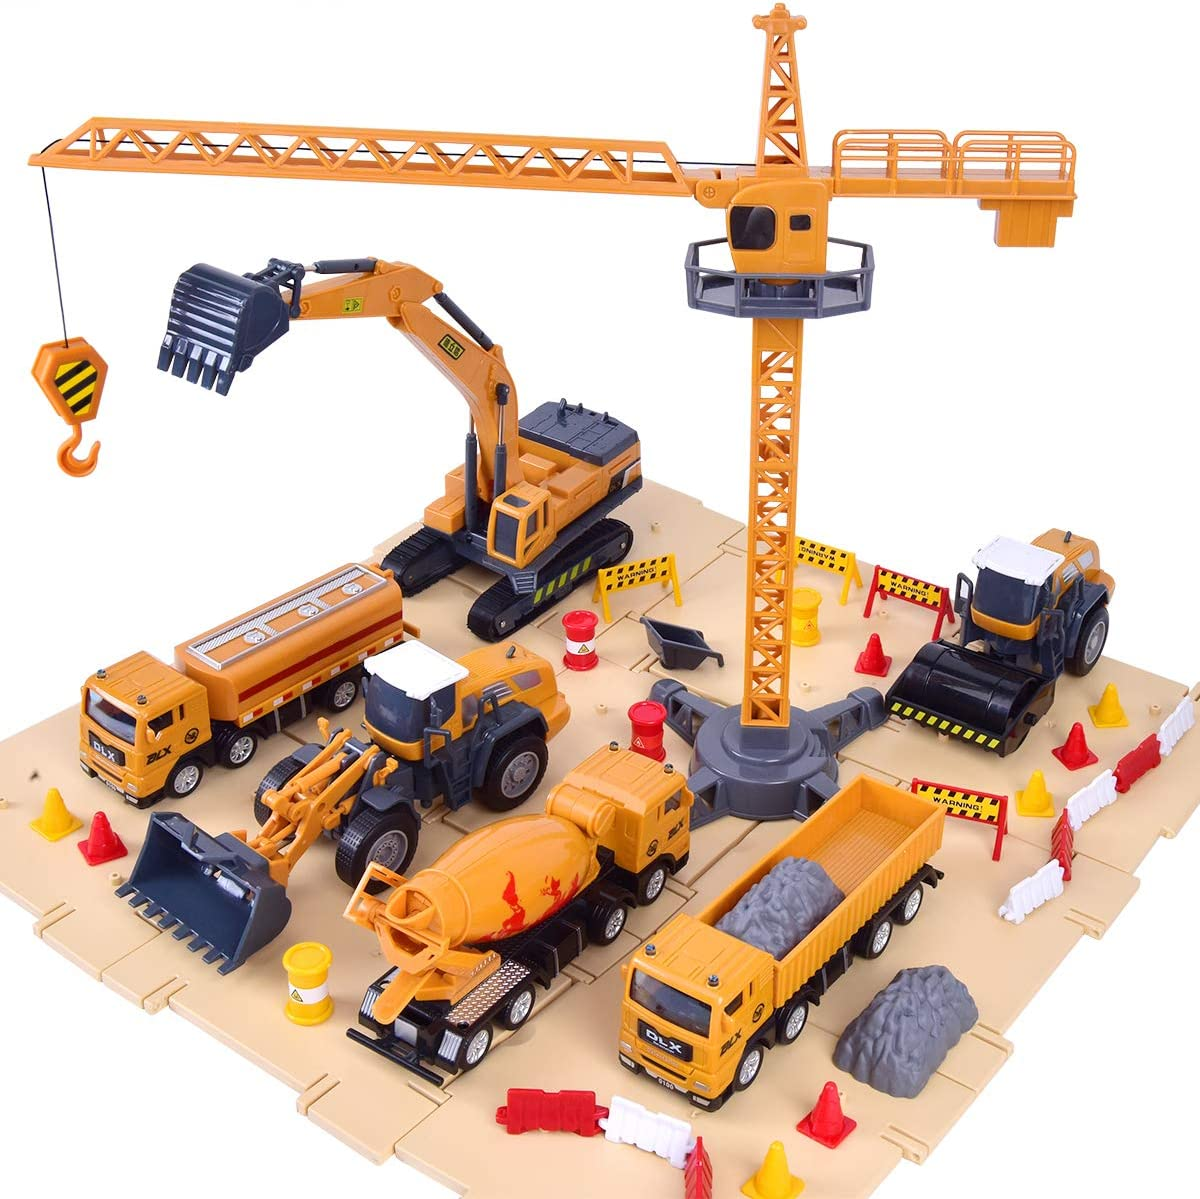 Crane Steamroller for 3 4 Construction Site Vehicles Toy Set Excavator Digger Cement Boys Tractor Dump Trucks Engineering Playset Kids /& Children 5 Year Old Toddlers Girls